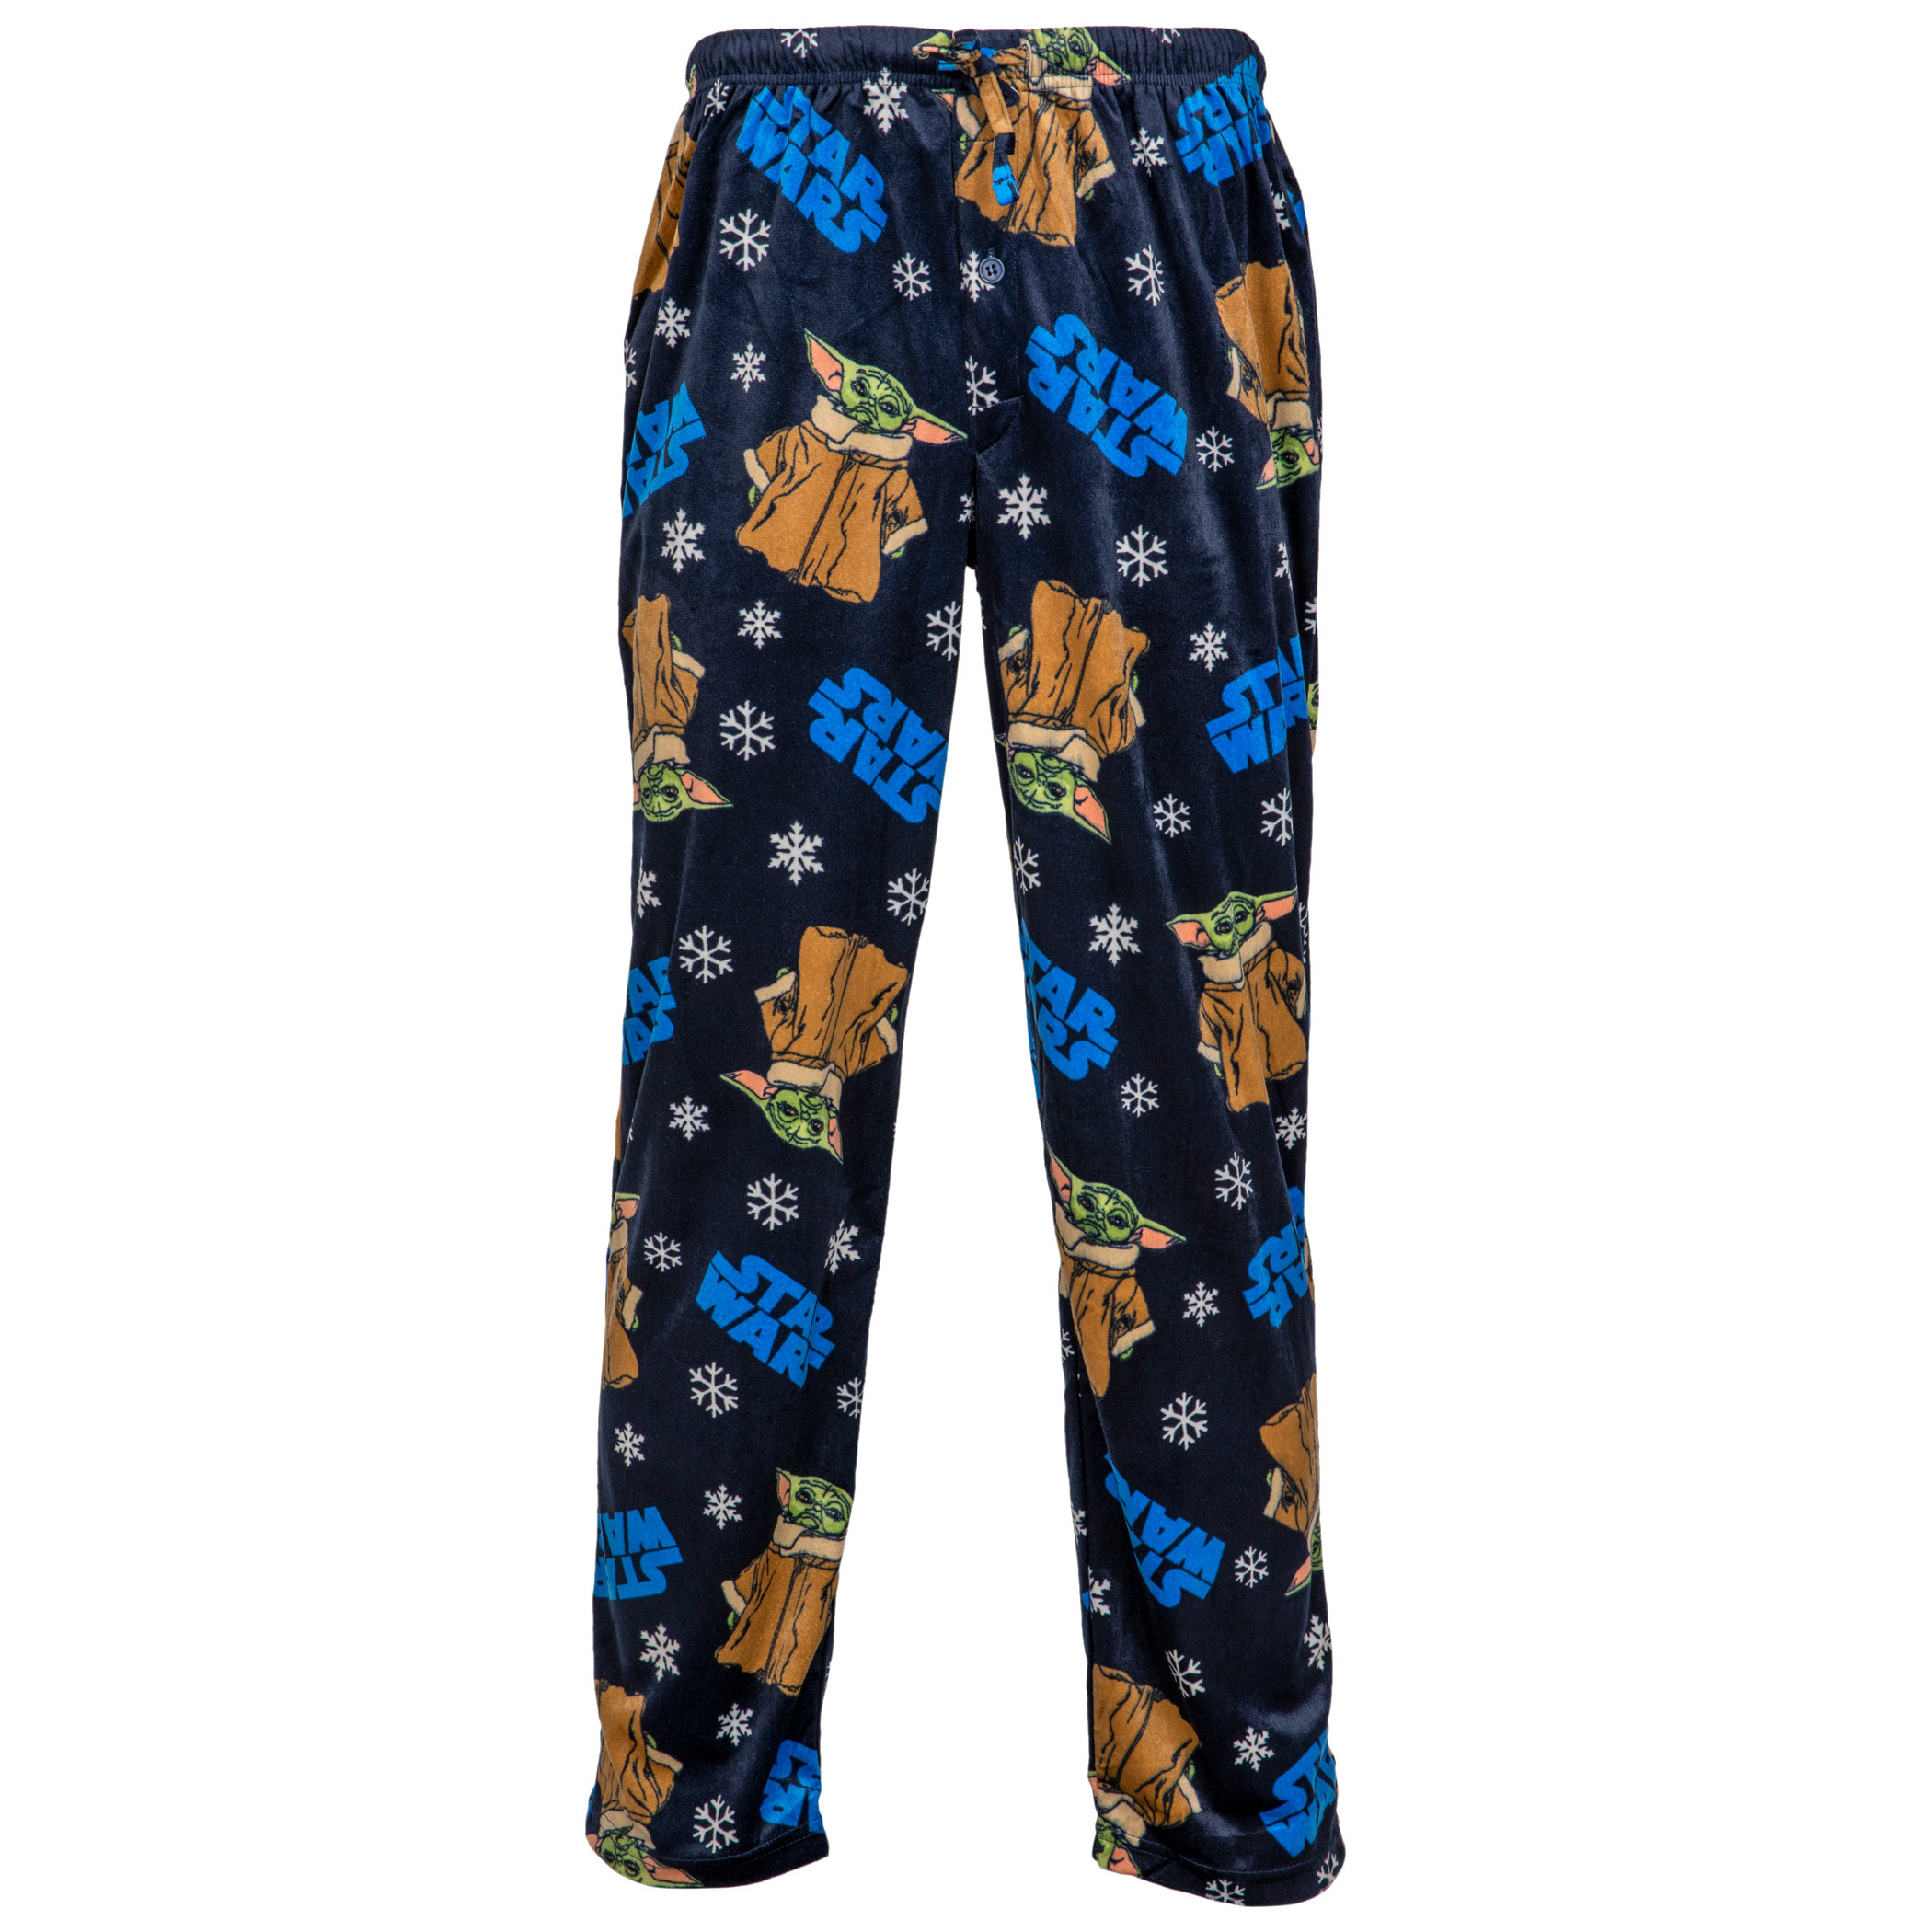 Star Wars The Child from The Mandalorian & Snowflakes Sueded Fleece Sleep Pants